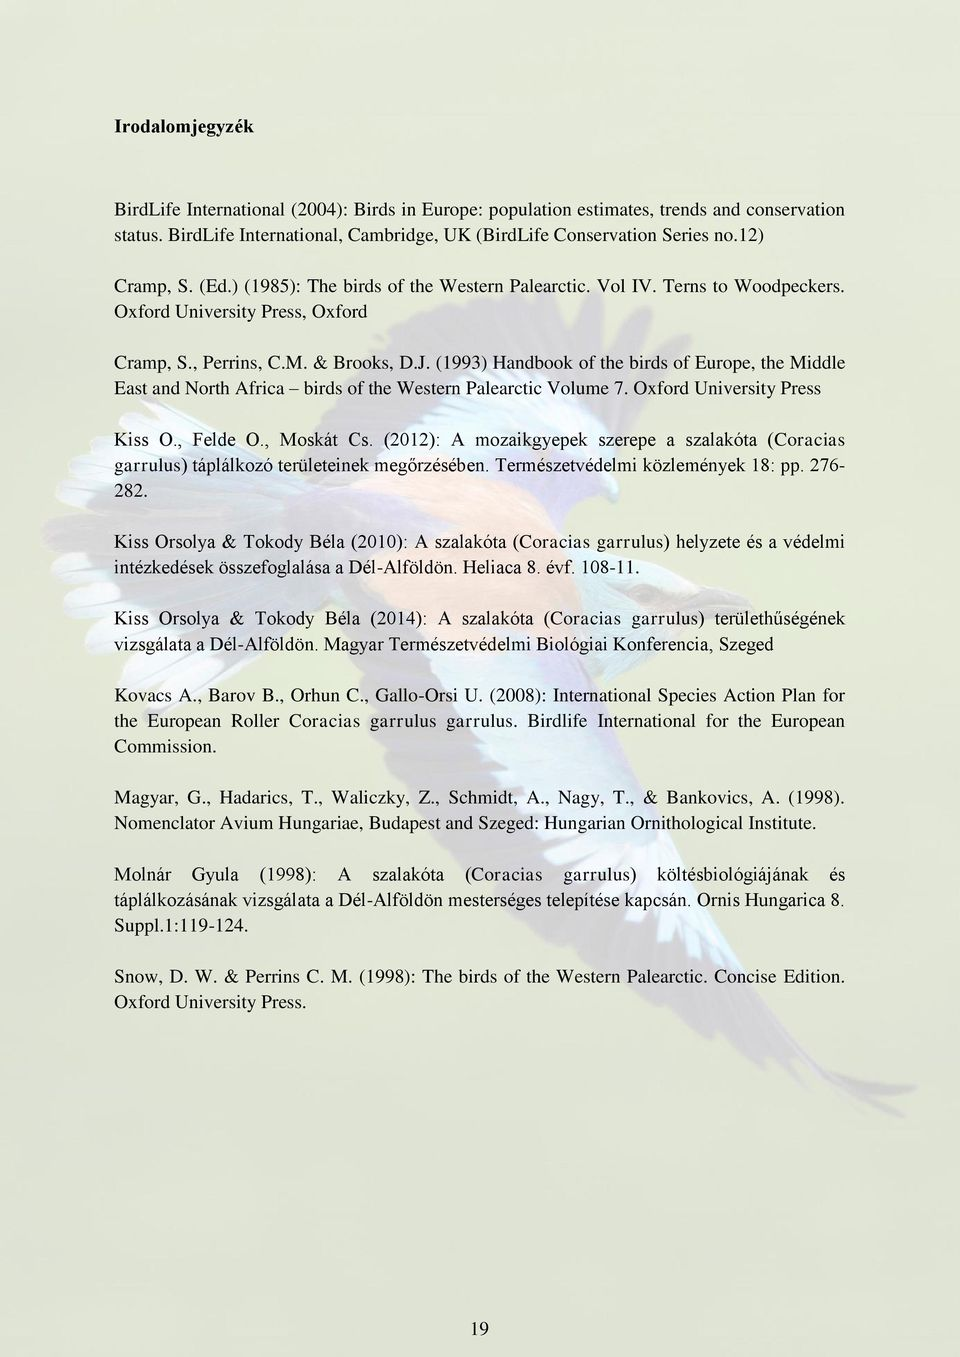 (1993) Handbook of the birds of Europe, the Middle East and North Africa birds of the Western Palearctic Volume 7. Oxford University Press Kiss O., Felde O., Moskát Cs.